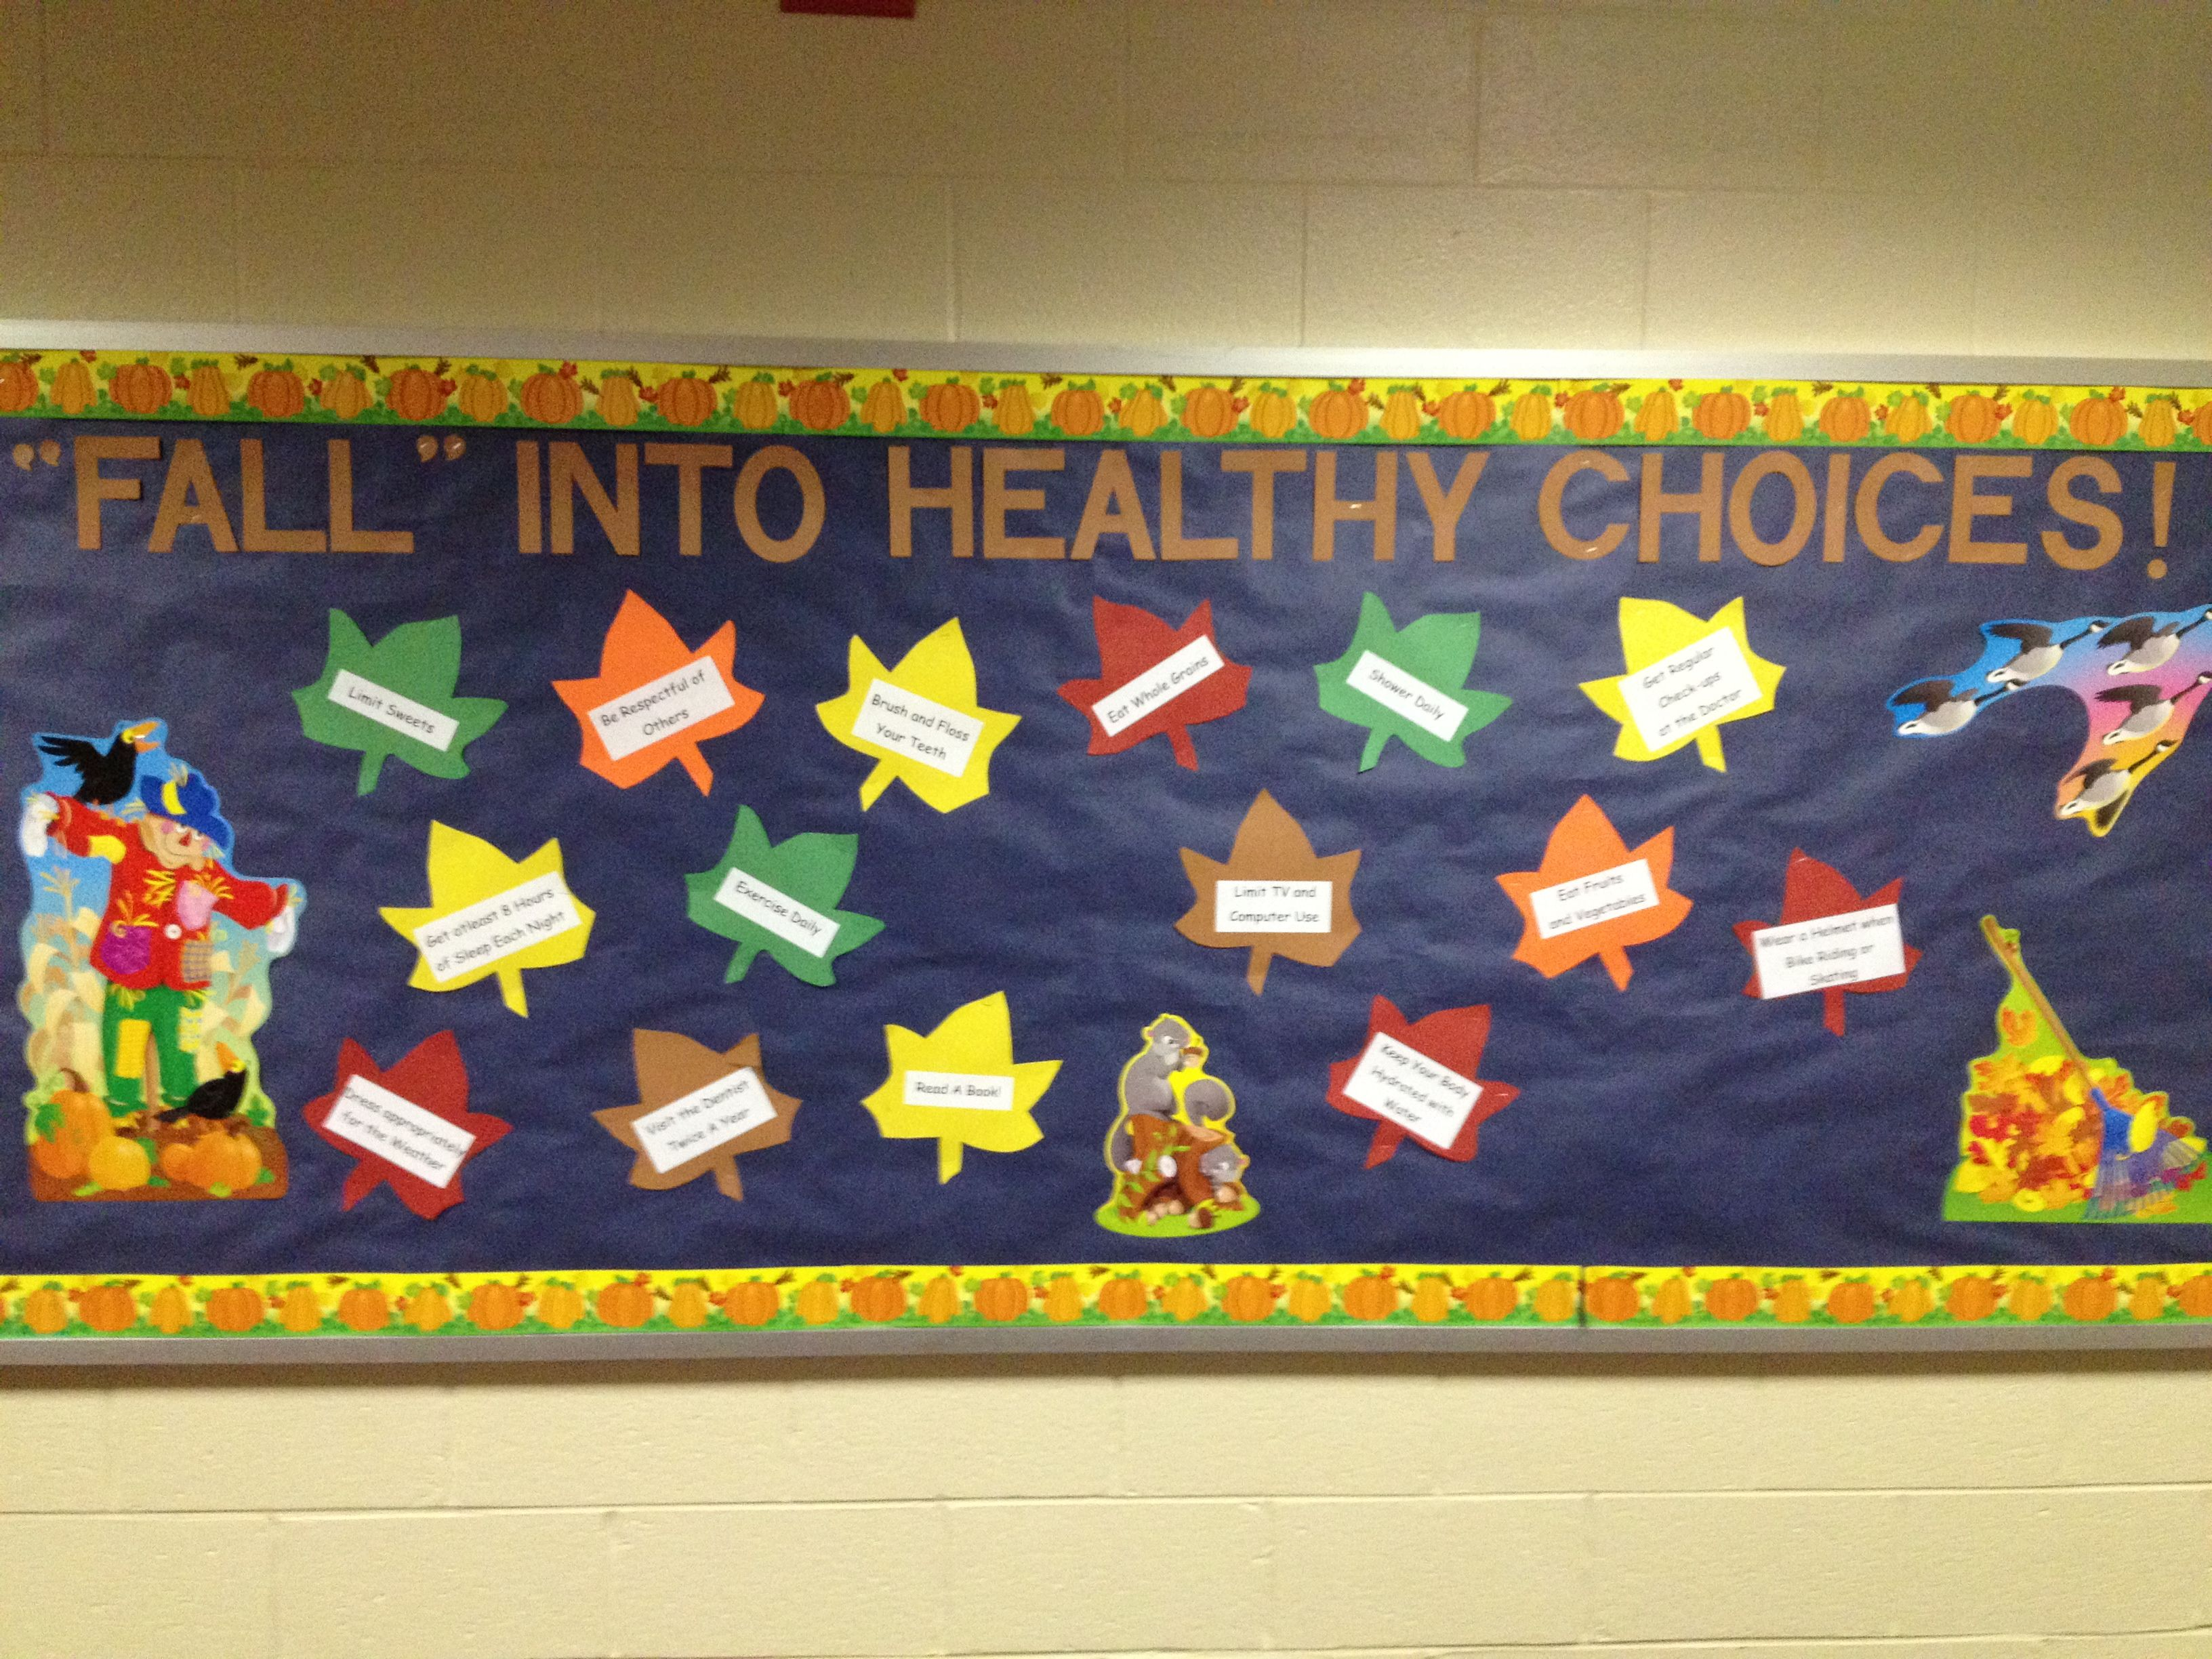 Go green vegetable bulletin board idea myclassroomideas com - Fall Into Healthy Choices